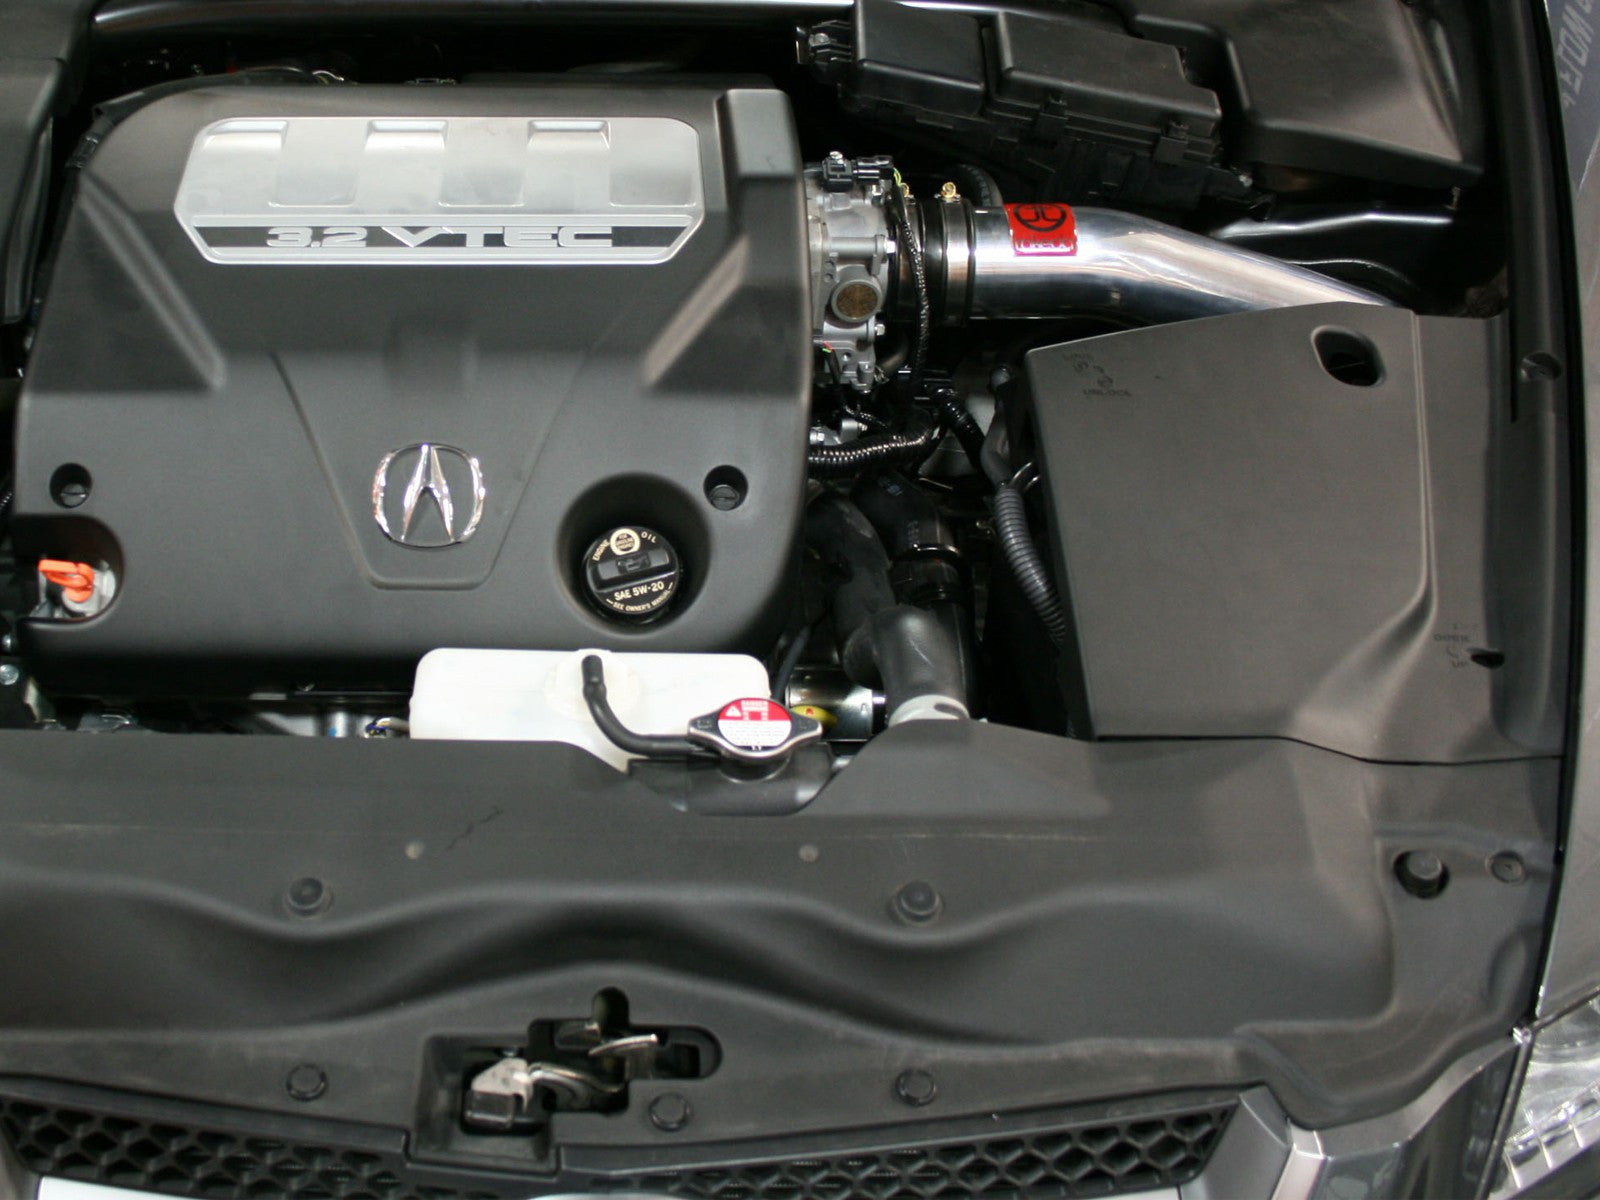 Takeda Stage Dry Attack Cold Air Intake Acura TL L V - Acura tl type s cold air intake